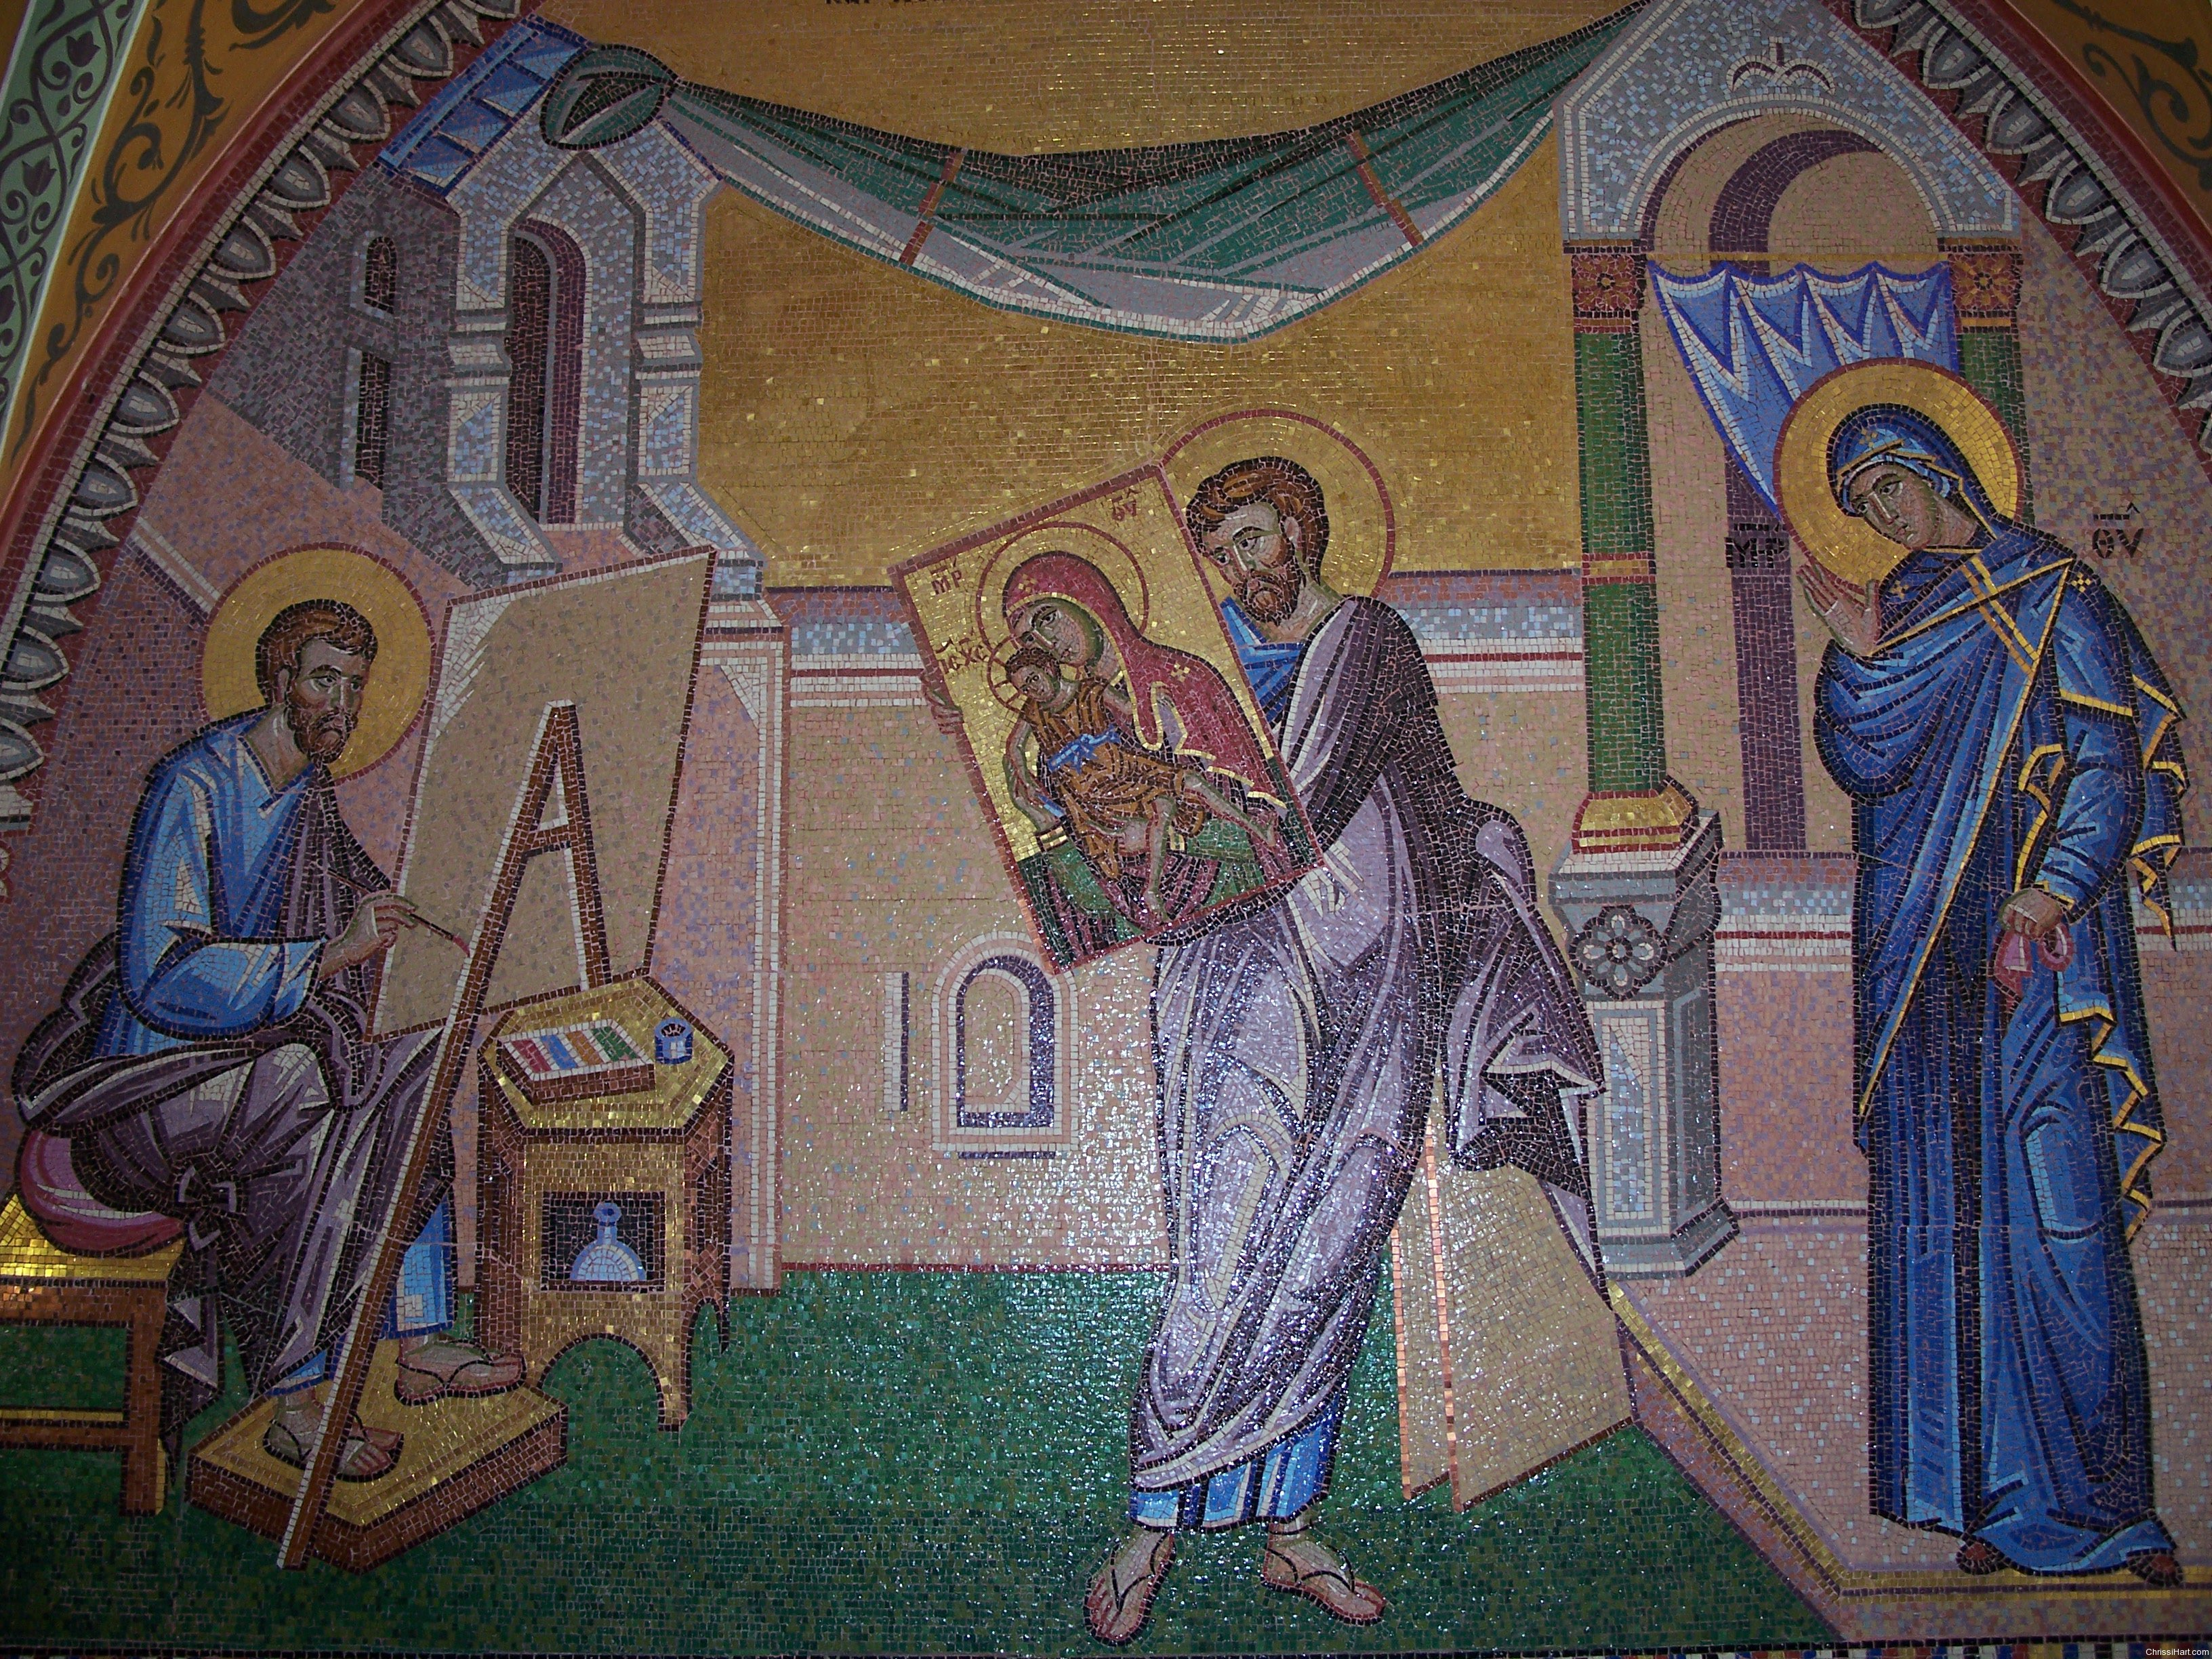 St Luke paints Theotokos who blesses icons 6